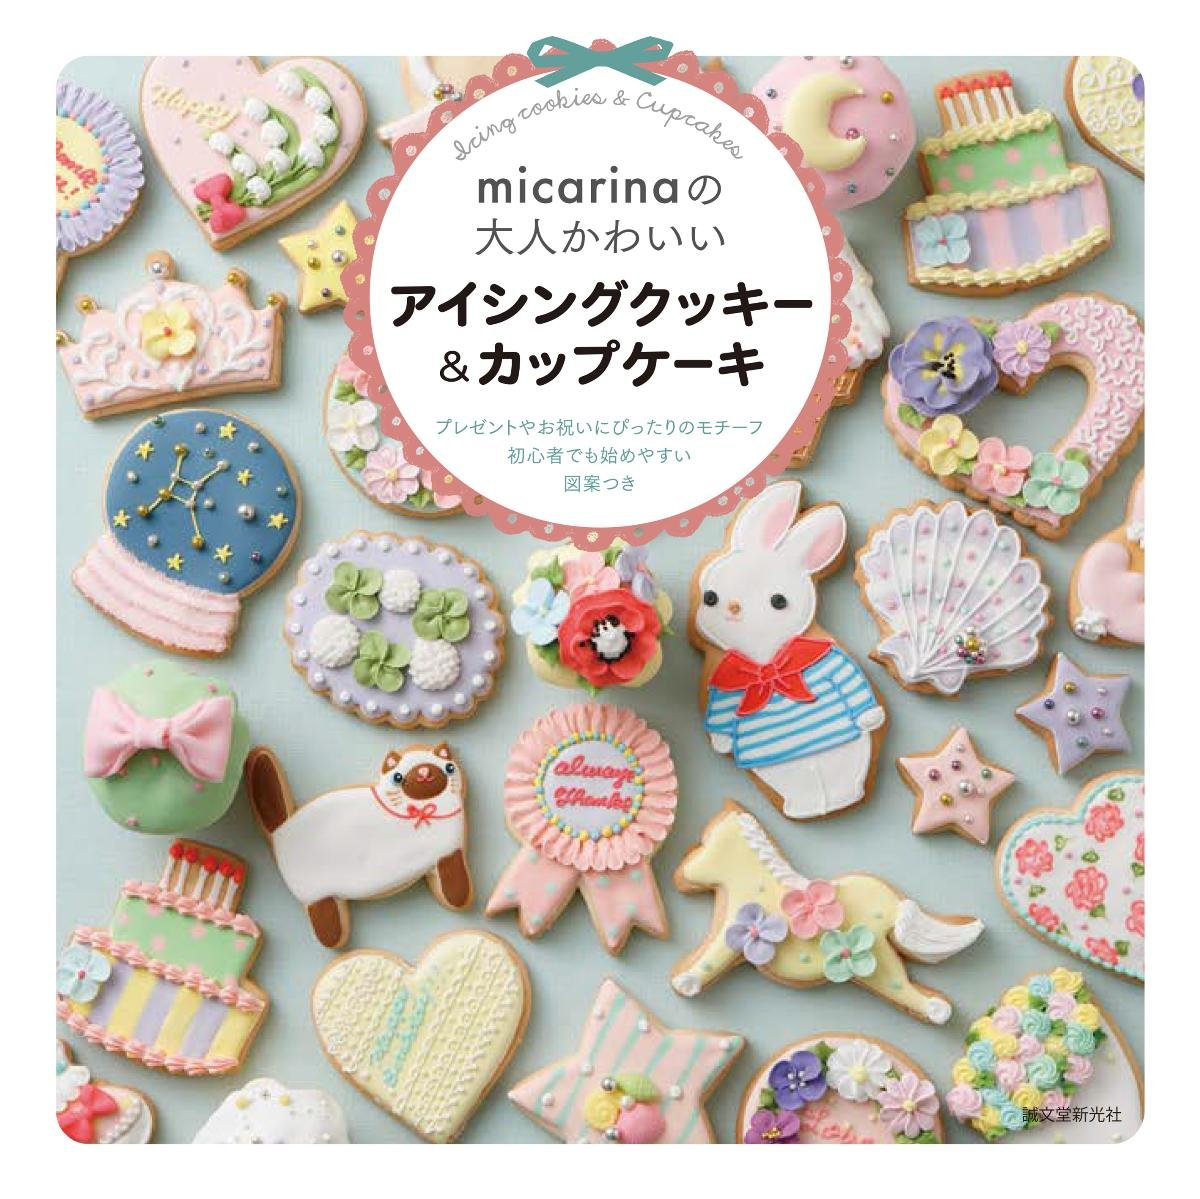 Icing cookies & cupcake: gifts and perfect for motif in celebration